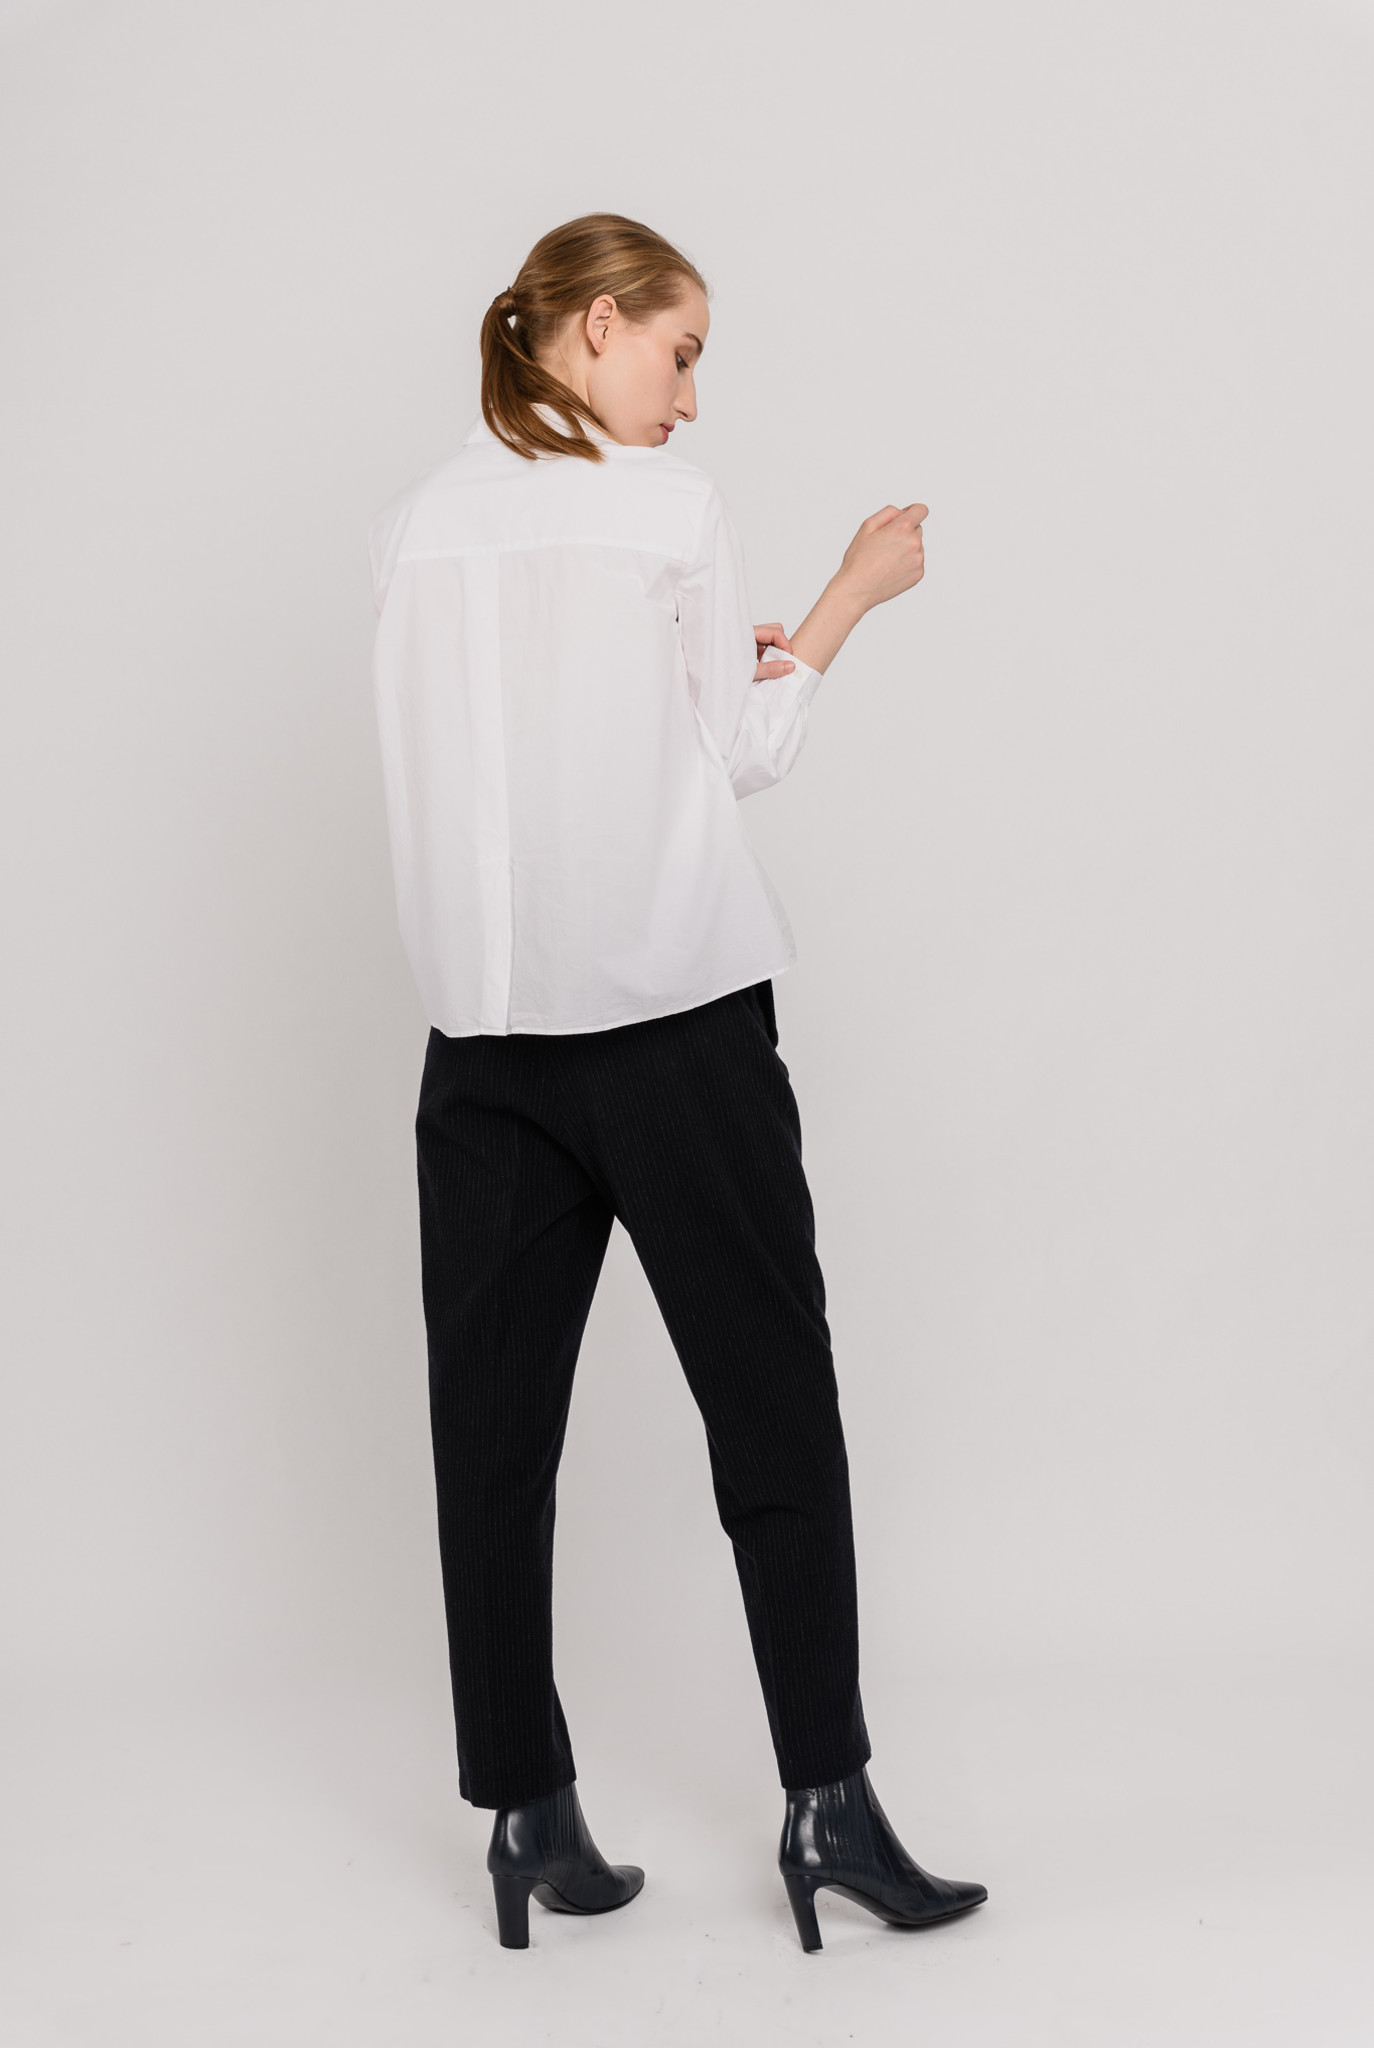 Blind buttoned blouse white cotton